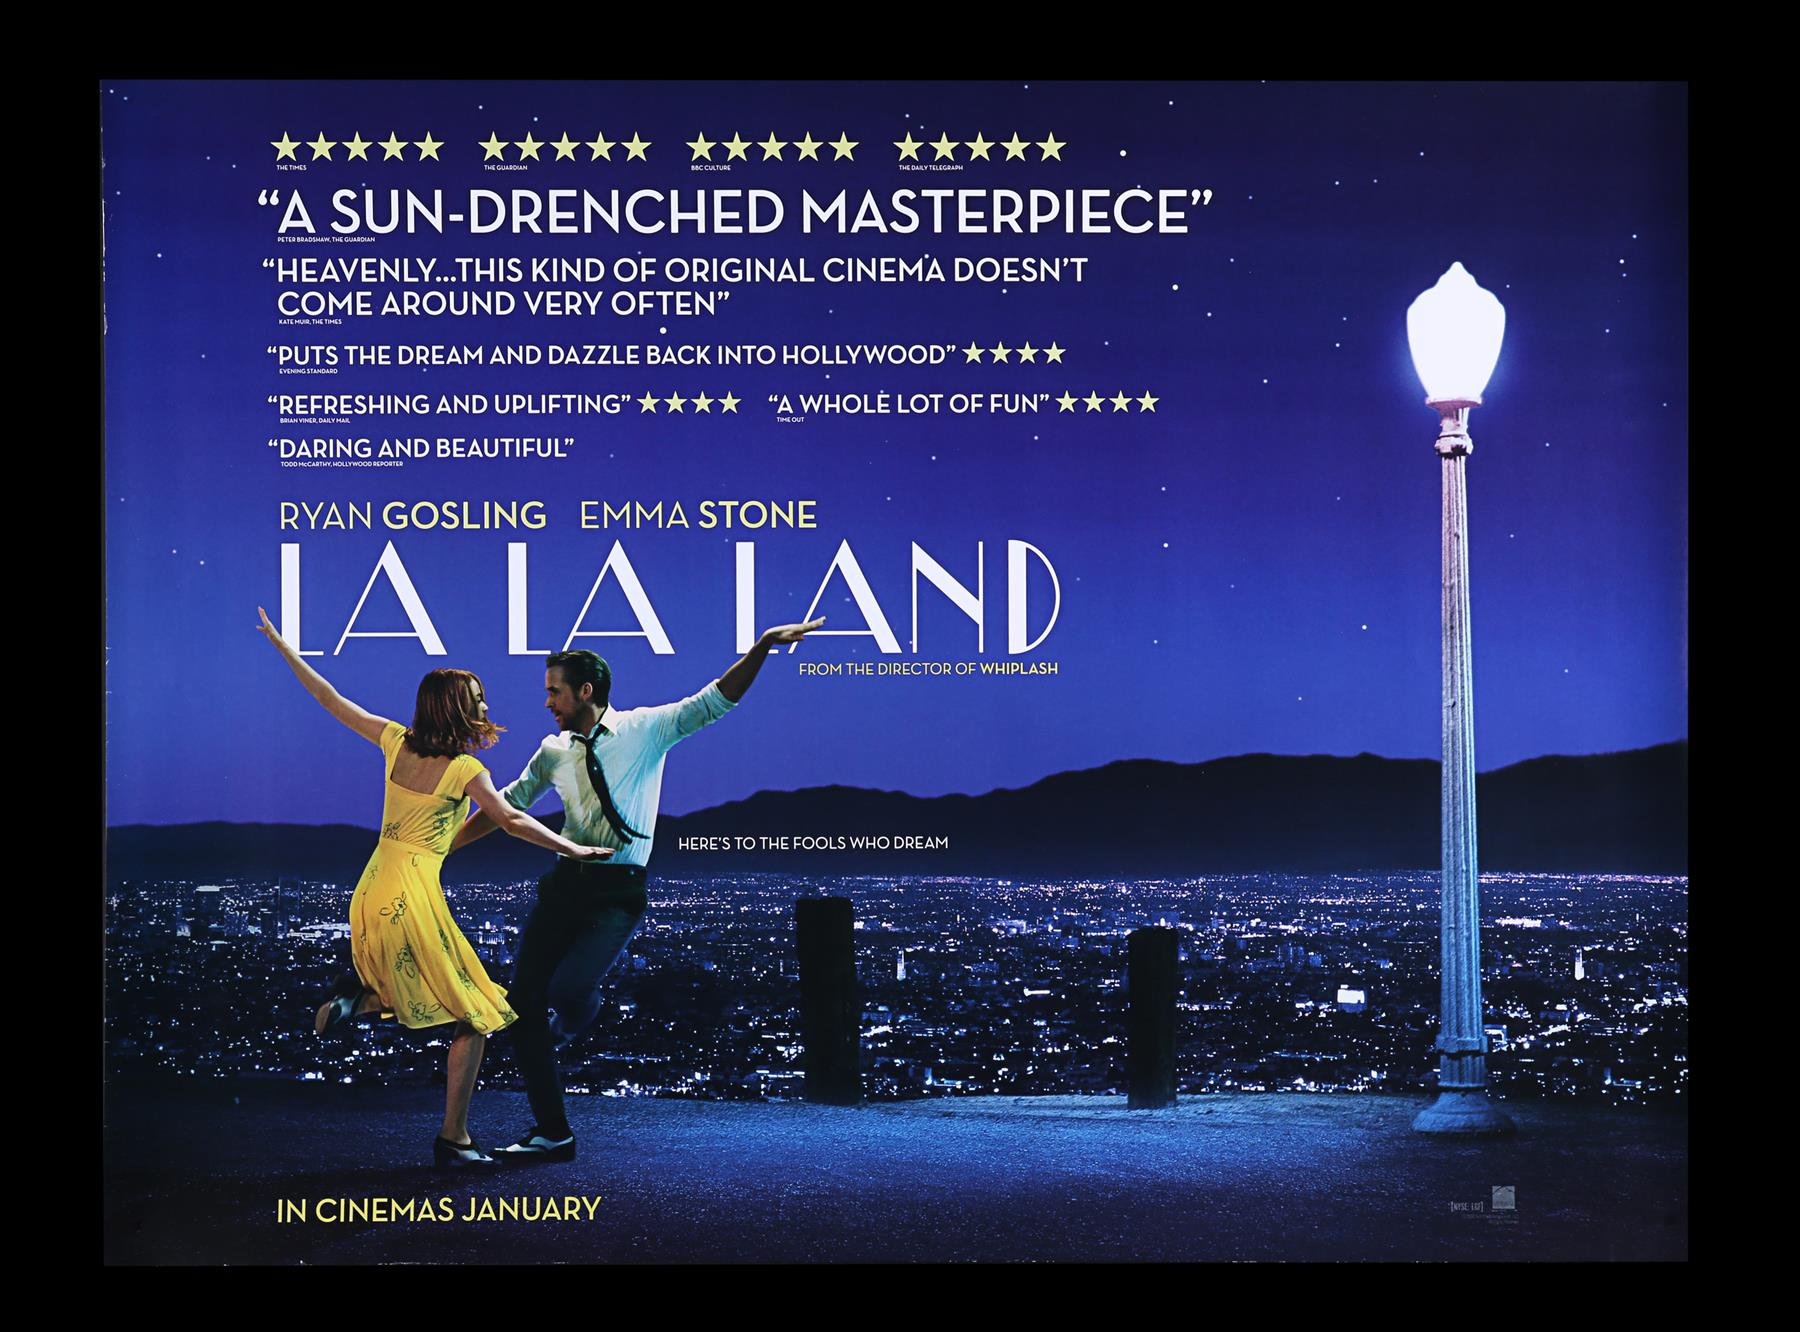 LA LA LAND (2016) - Two UK Quads and One-Sheet, 2016 - Image 2 of 7